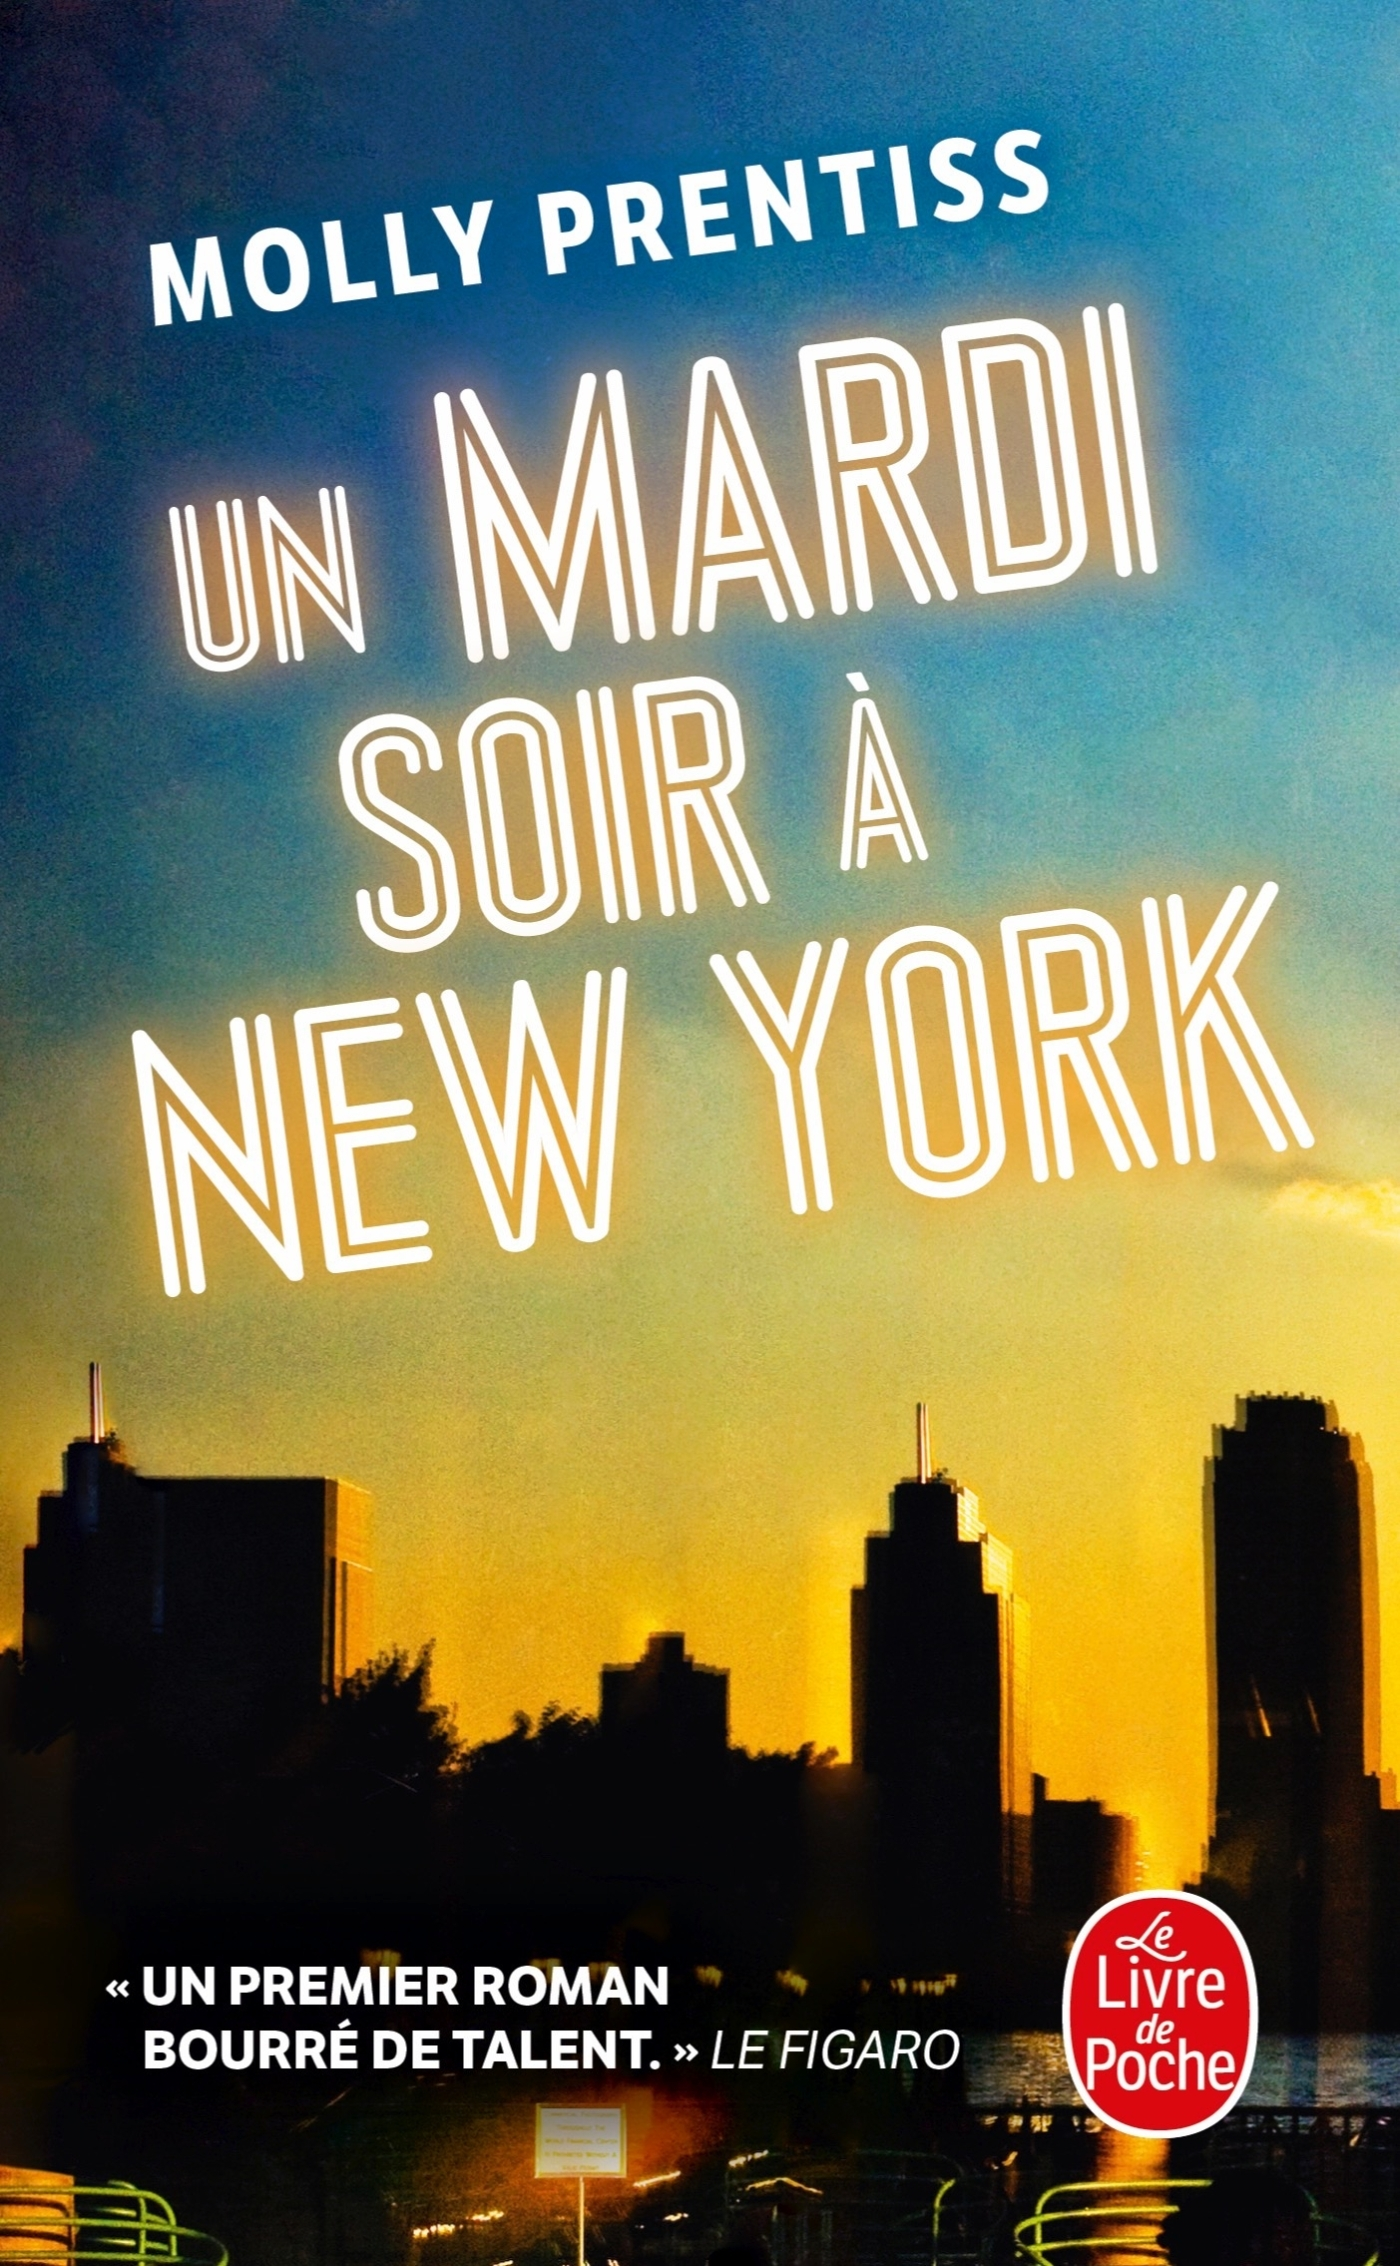 UN MARDI SOIR A NEW-YORK